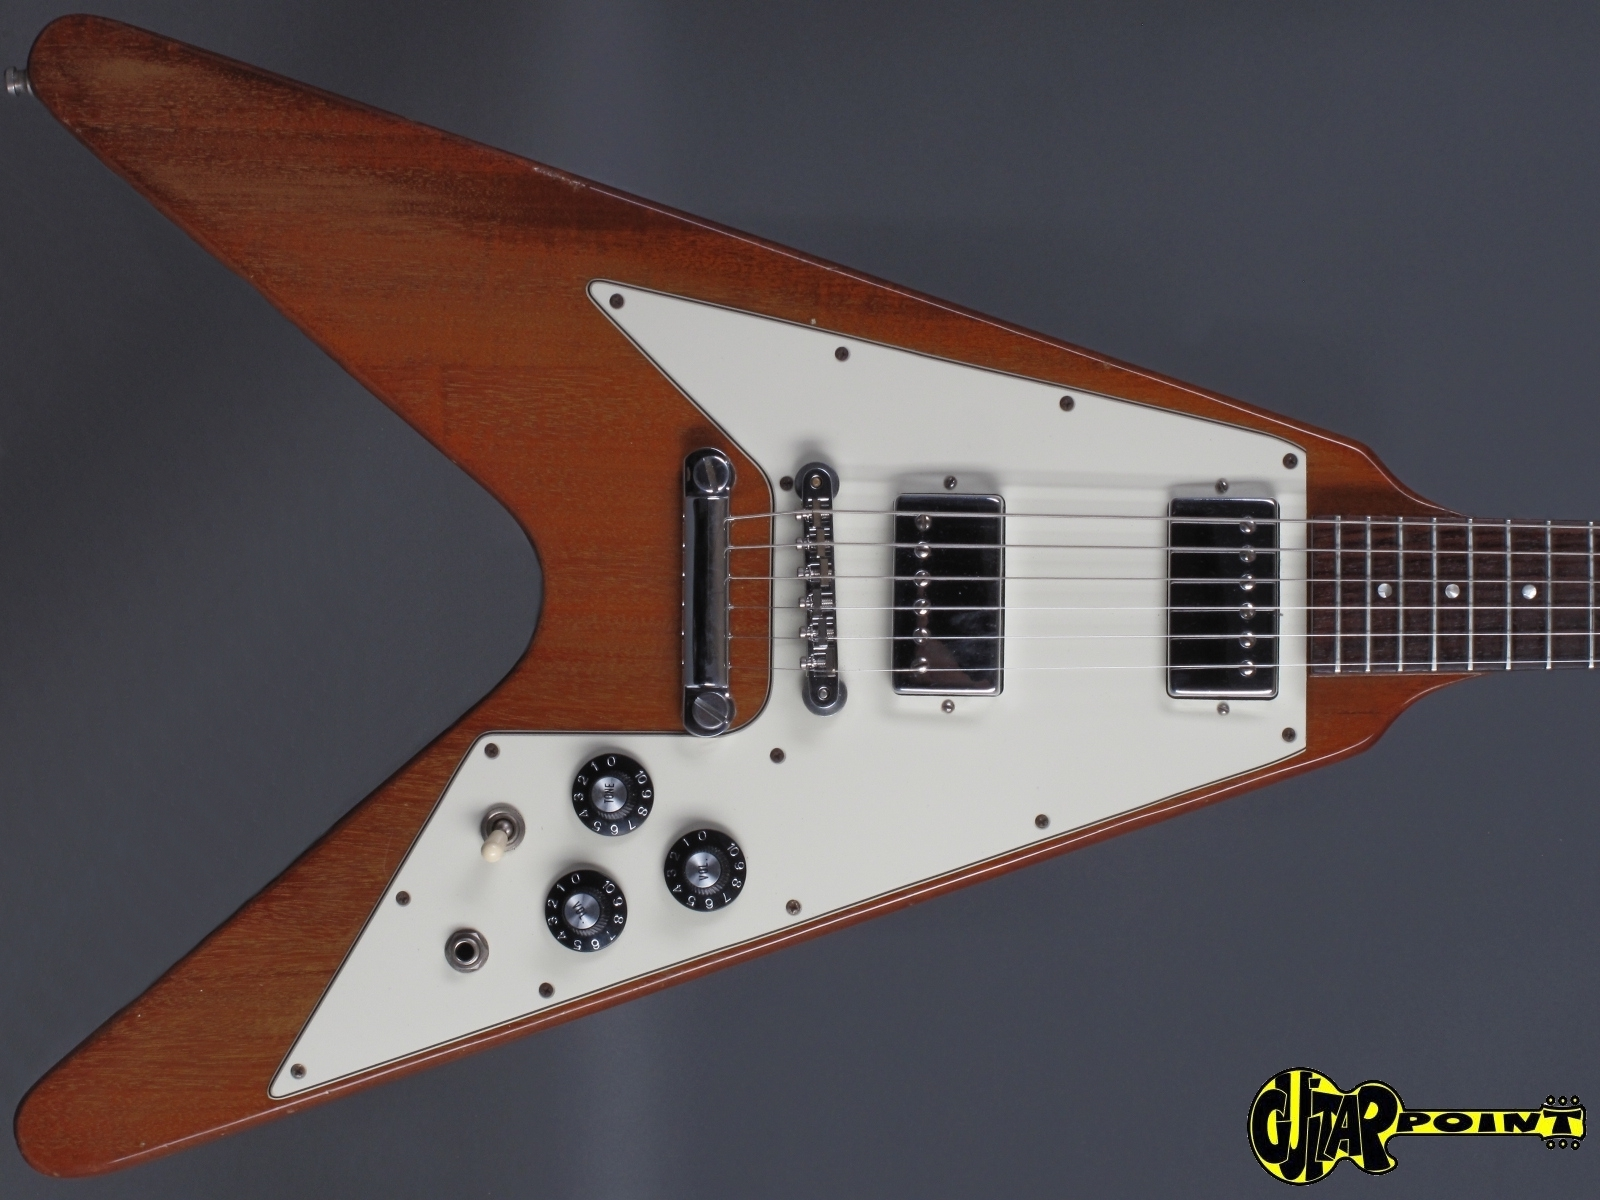 gibson flying v 1981 natural guitar for sale guitarpoint. Black Bedroom Furniture Sets. Home Design Ideas